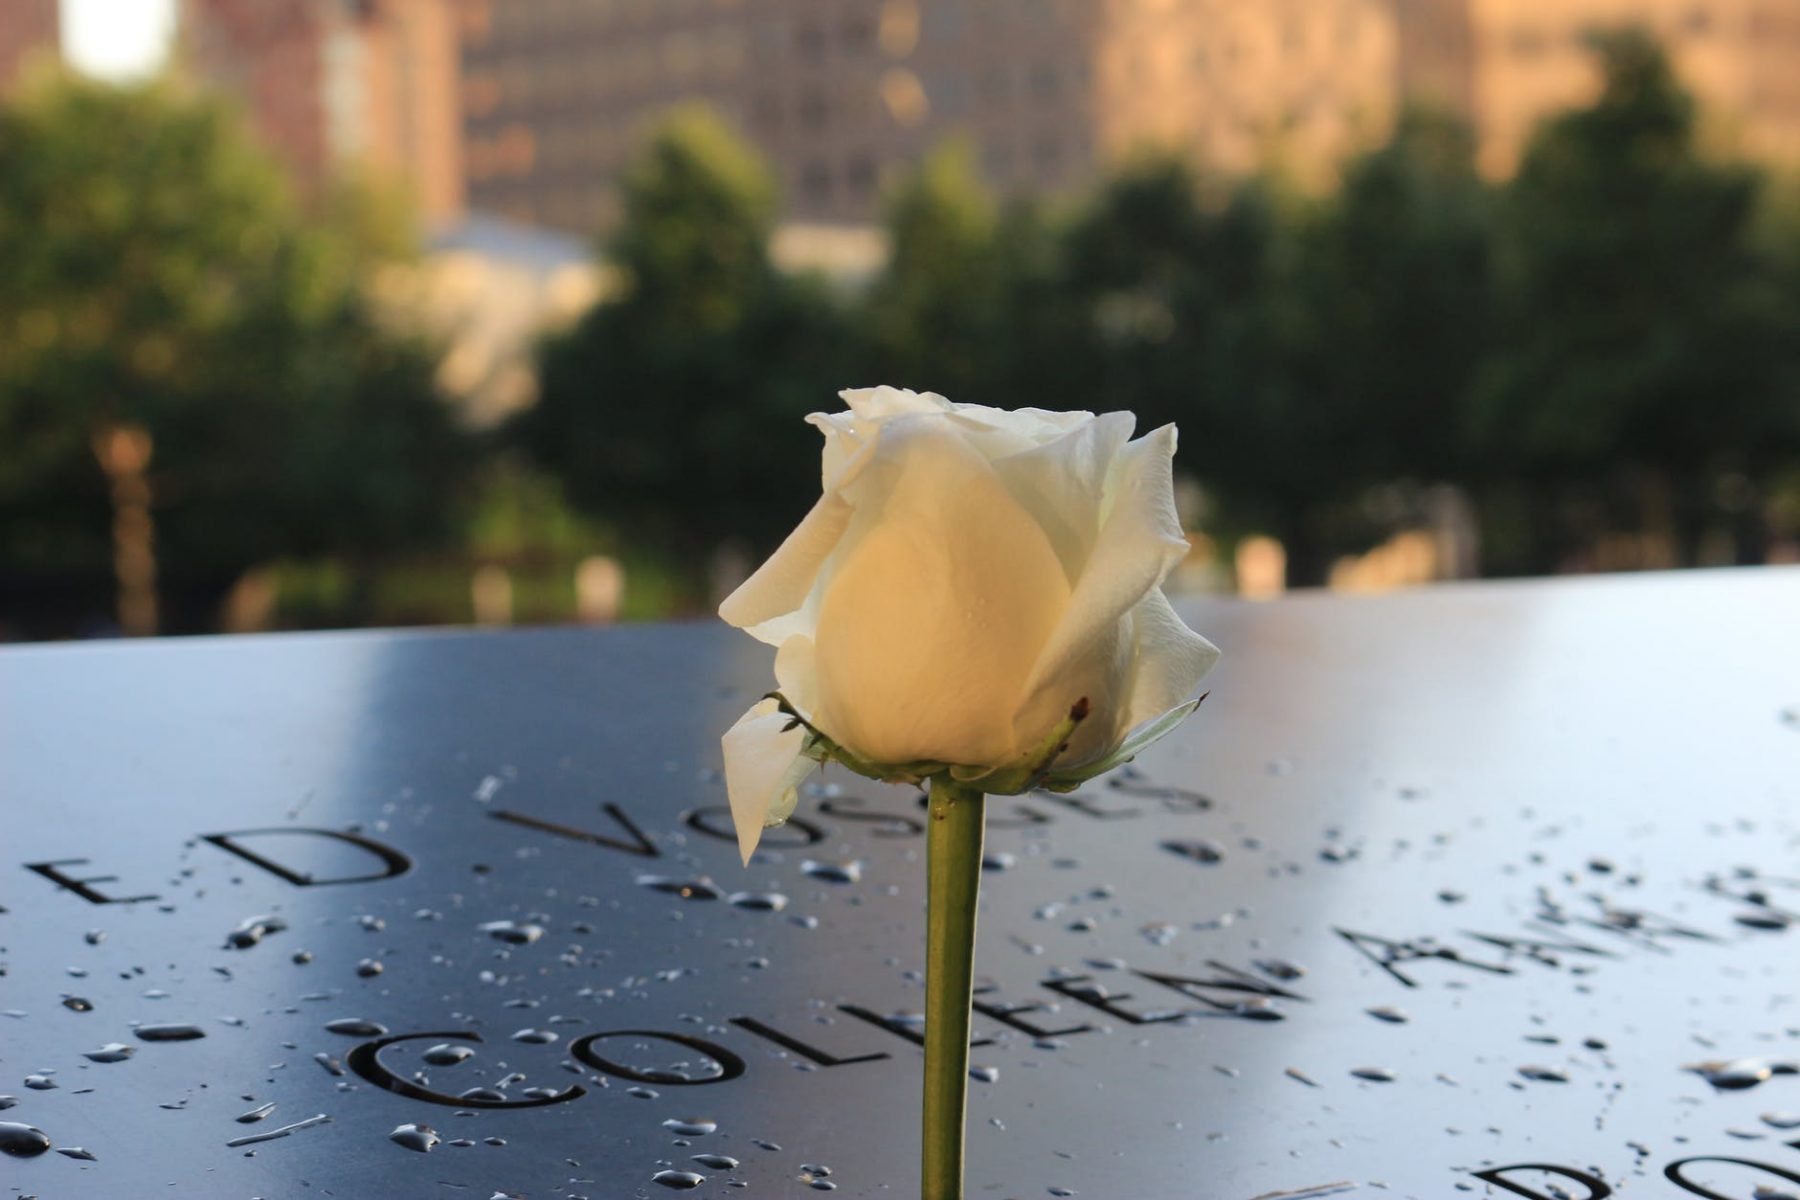 Remembering September 11 in NYC 20 Years On